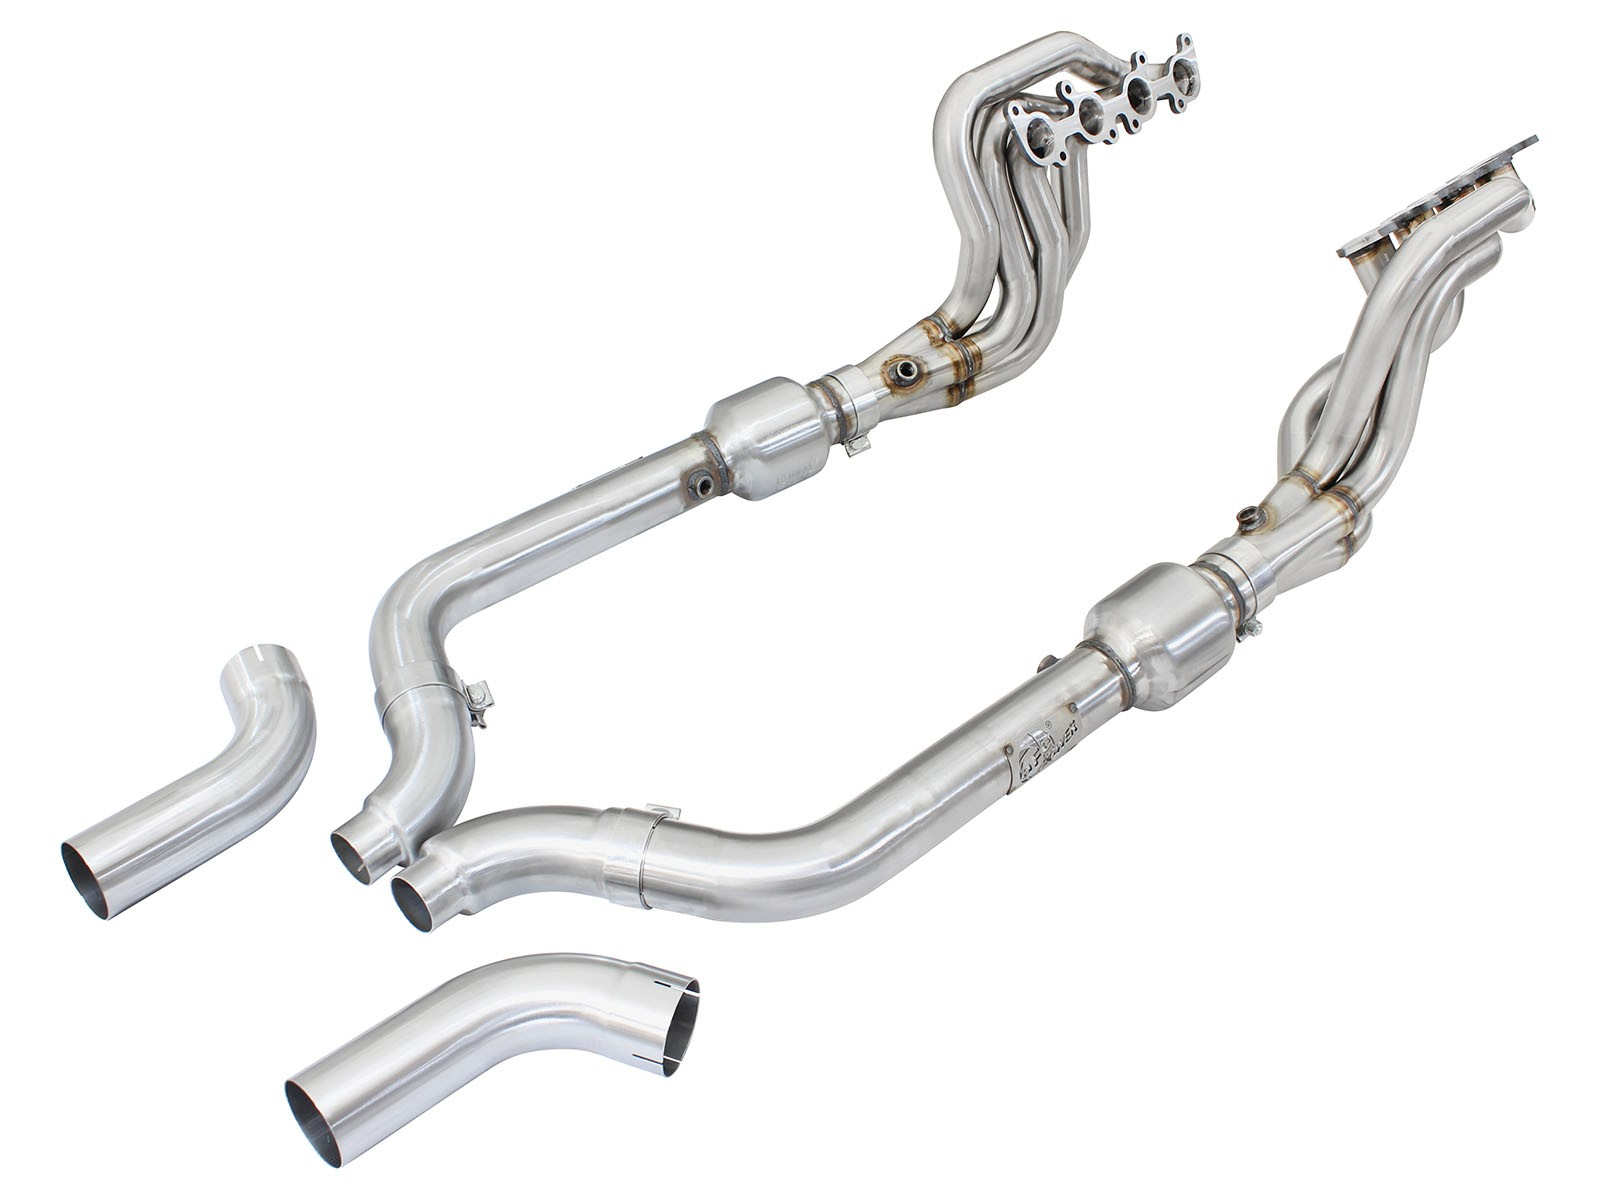 2015-2017 Mustang GT 5 0L AFE Twisted Steel Long Tube Header & Connection  Pipes